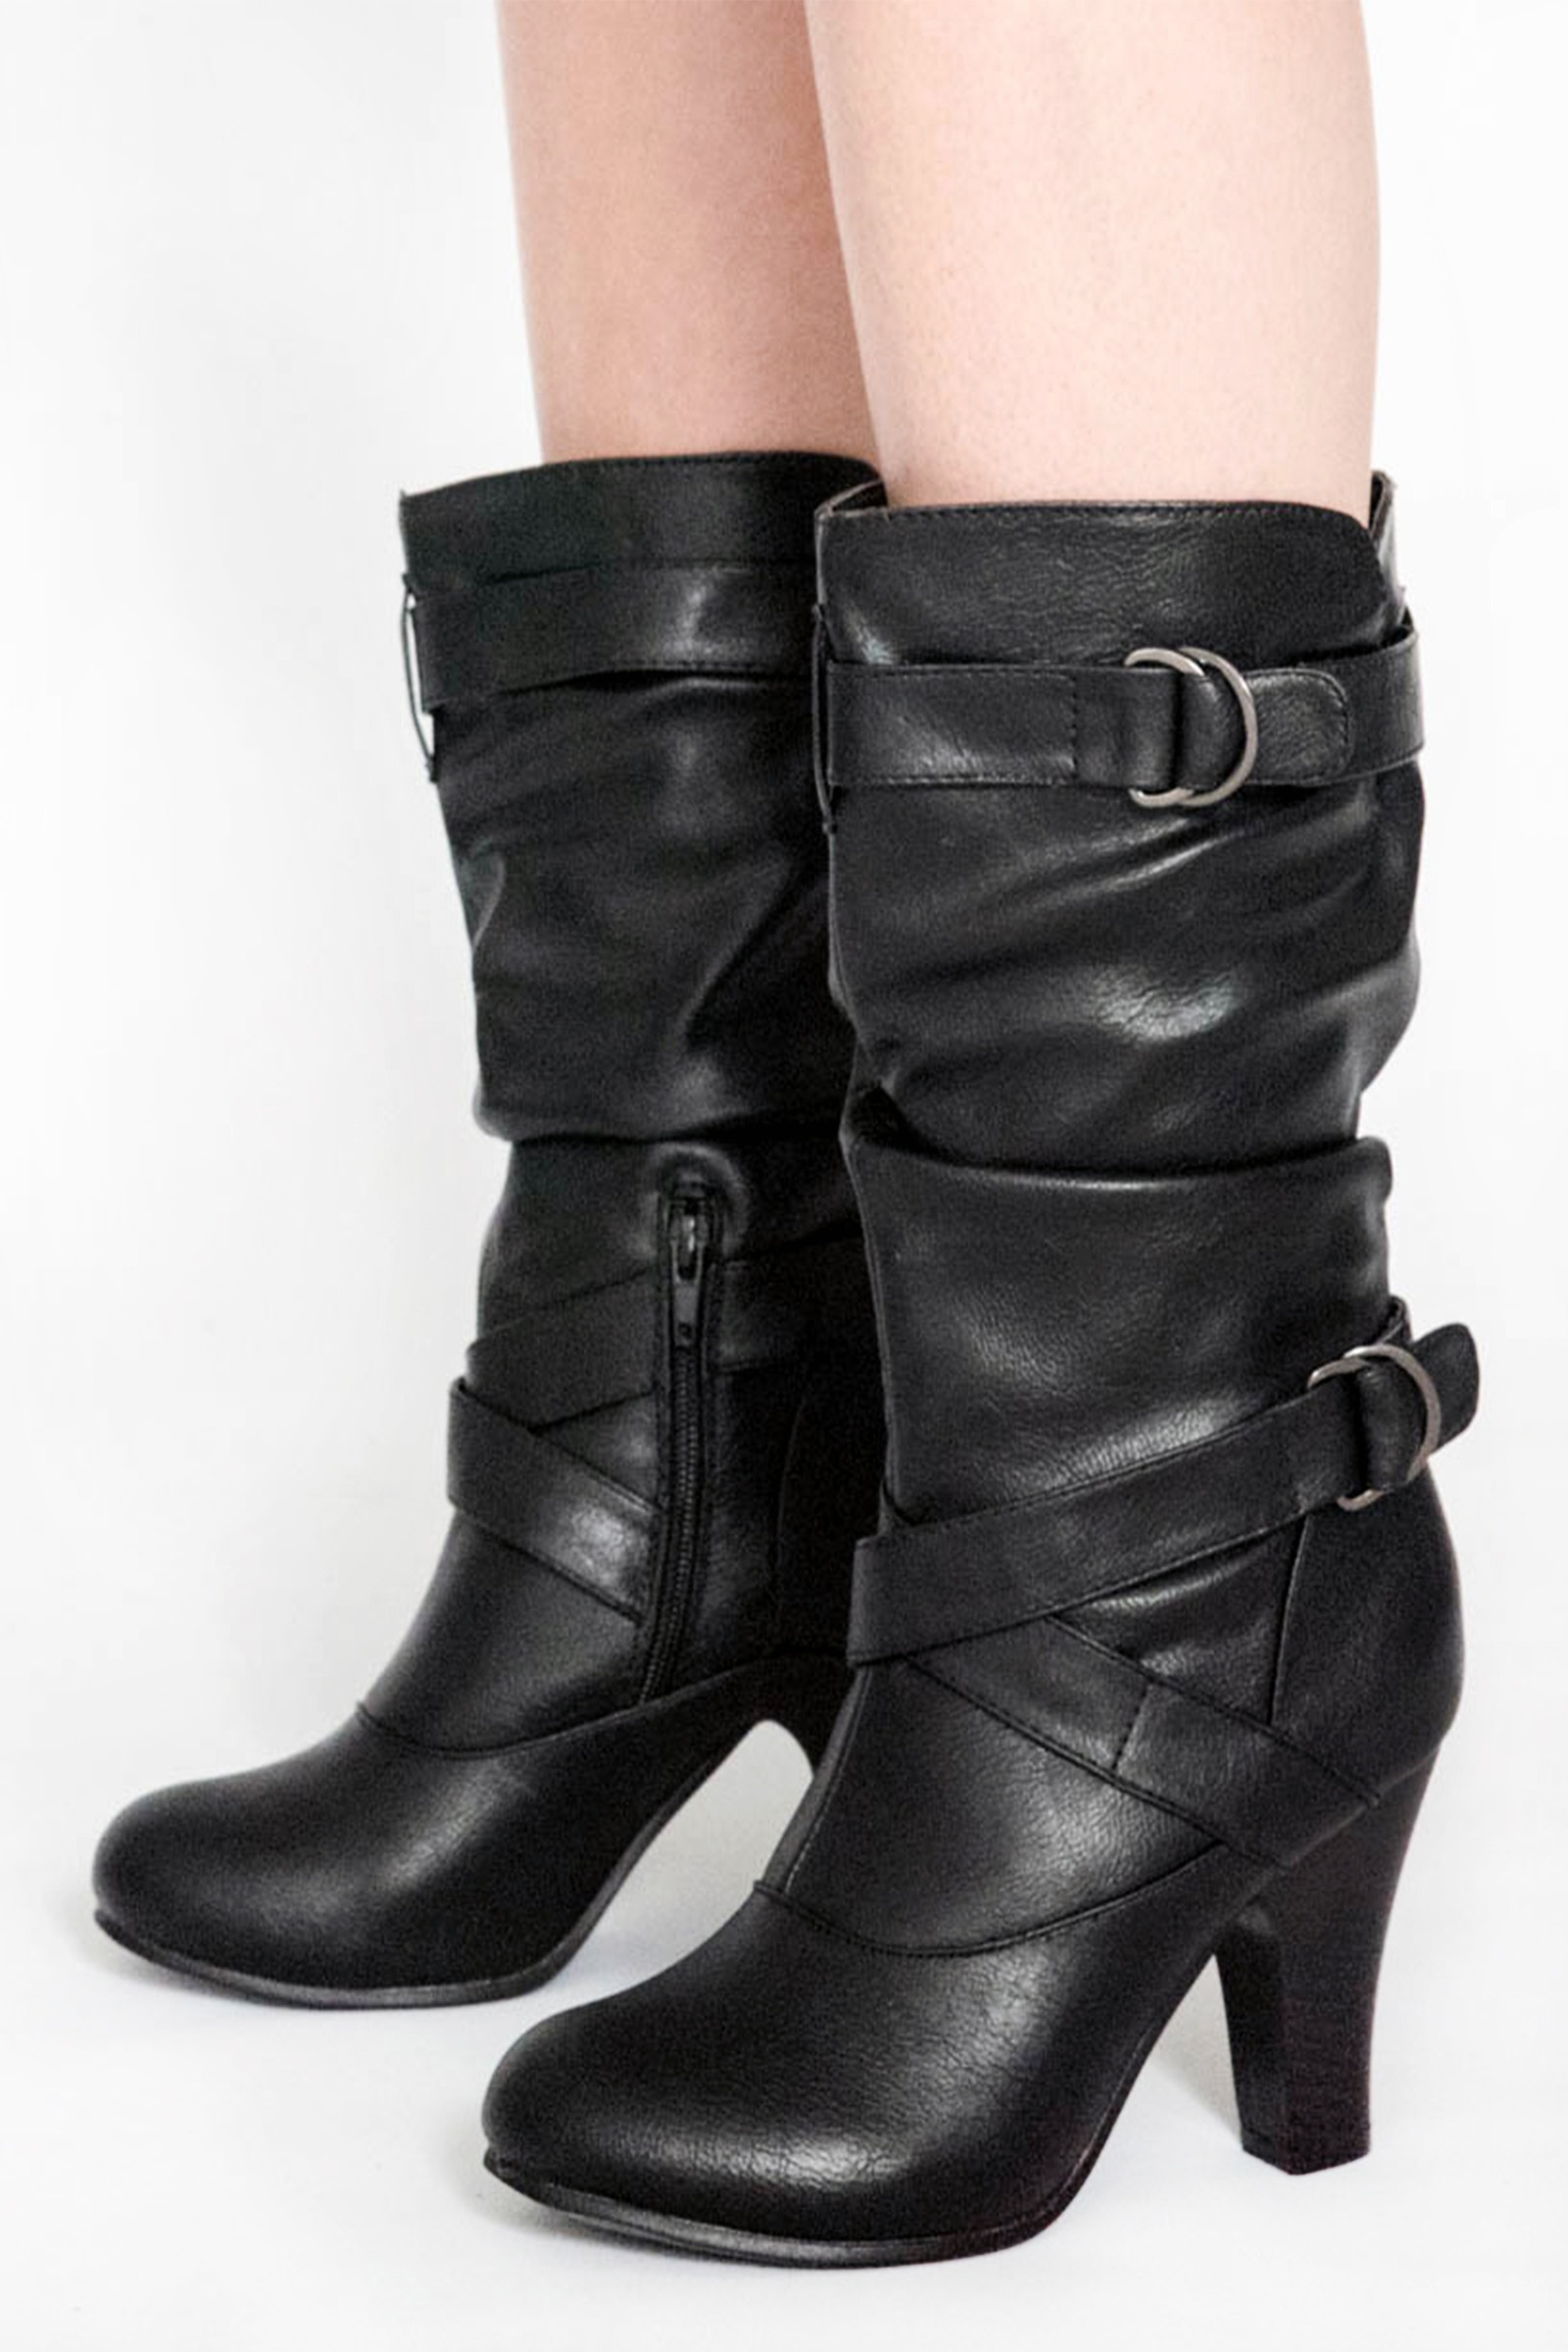 slouch black mid calf boots